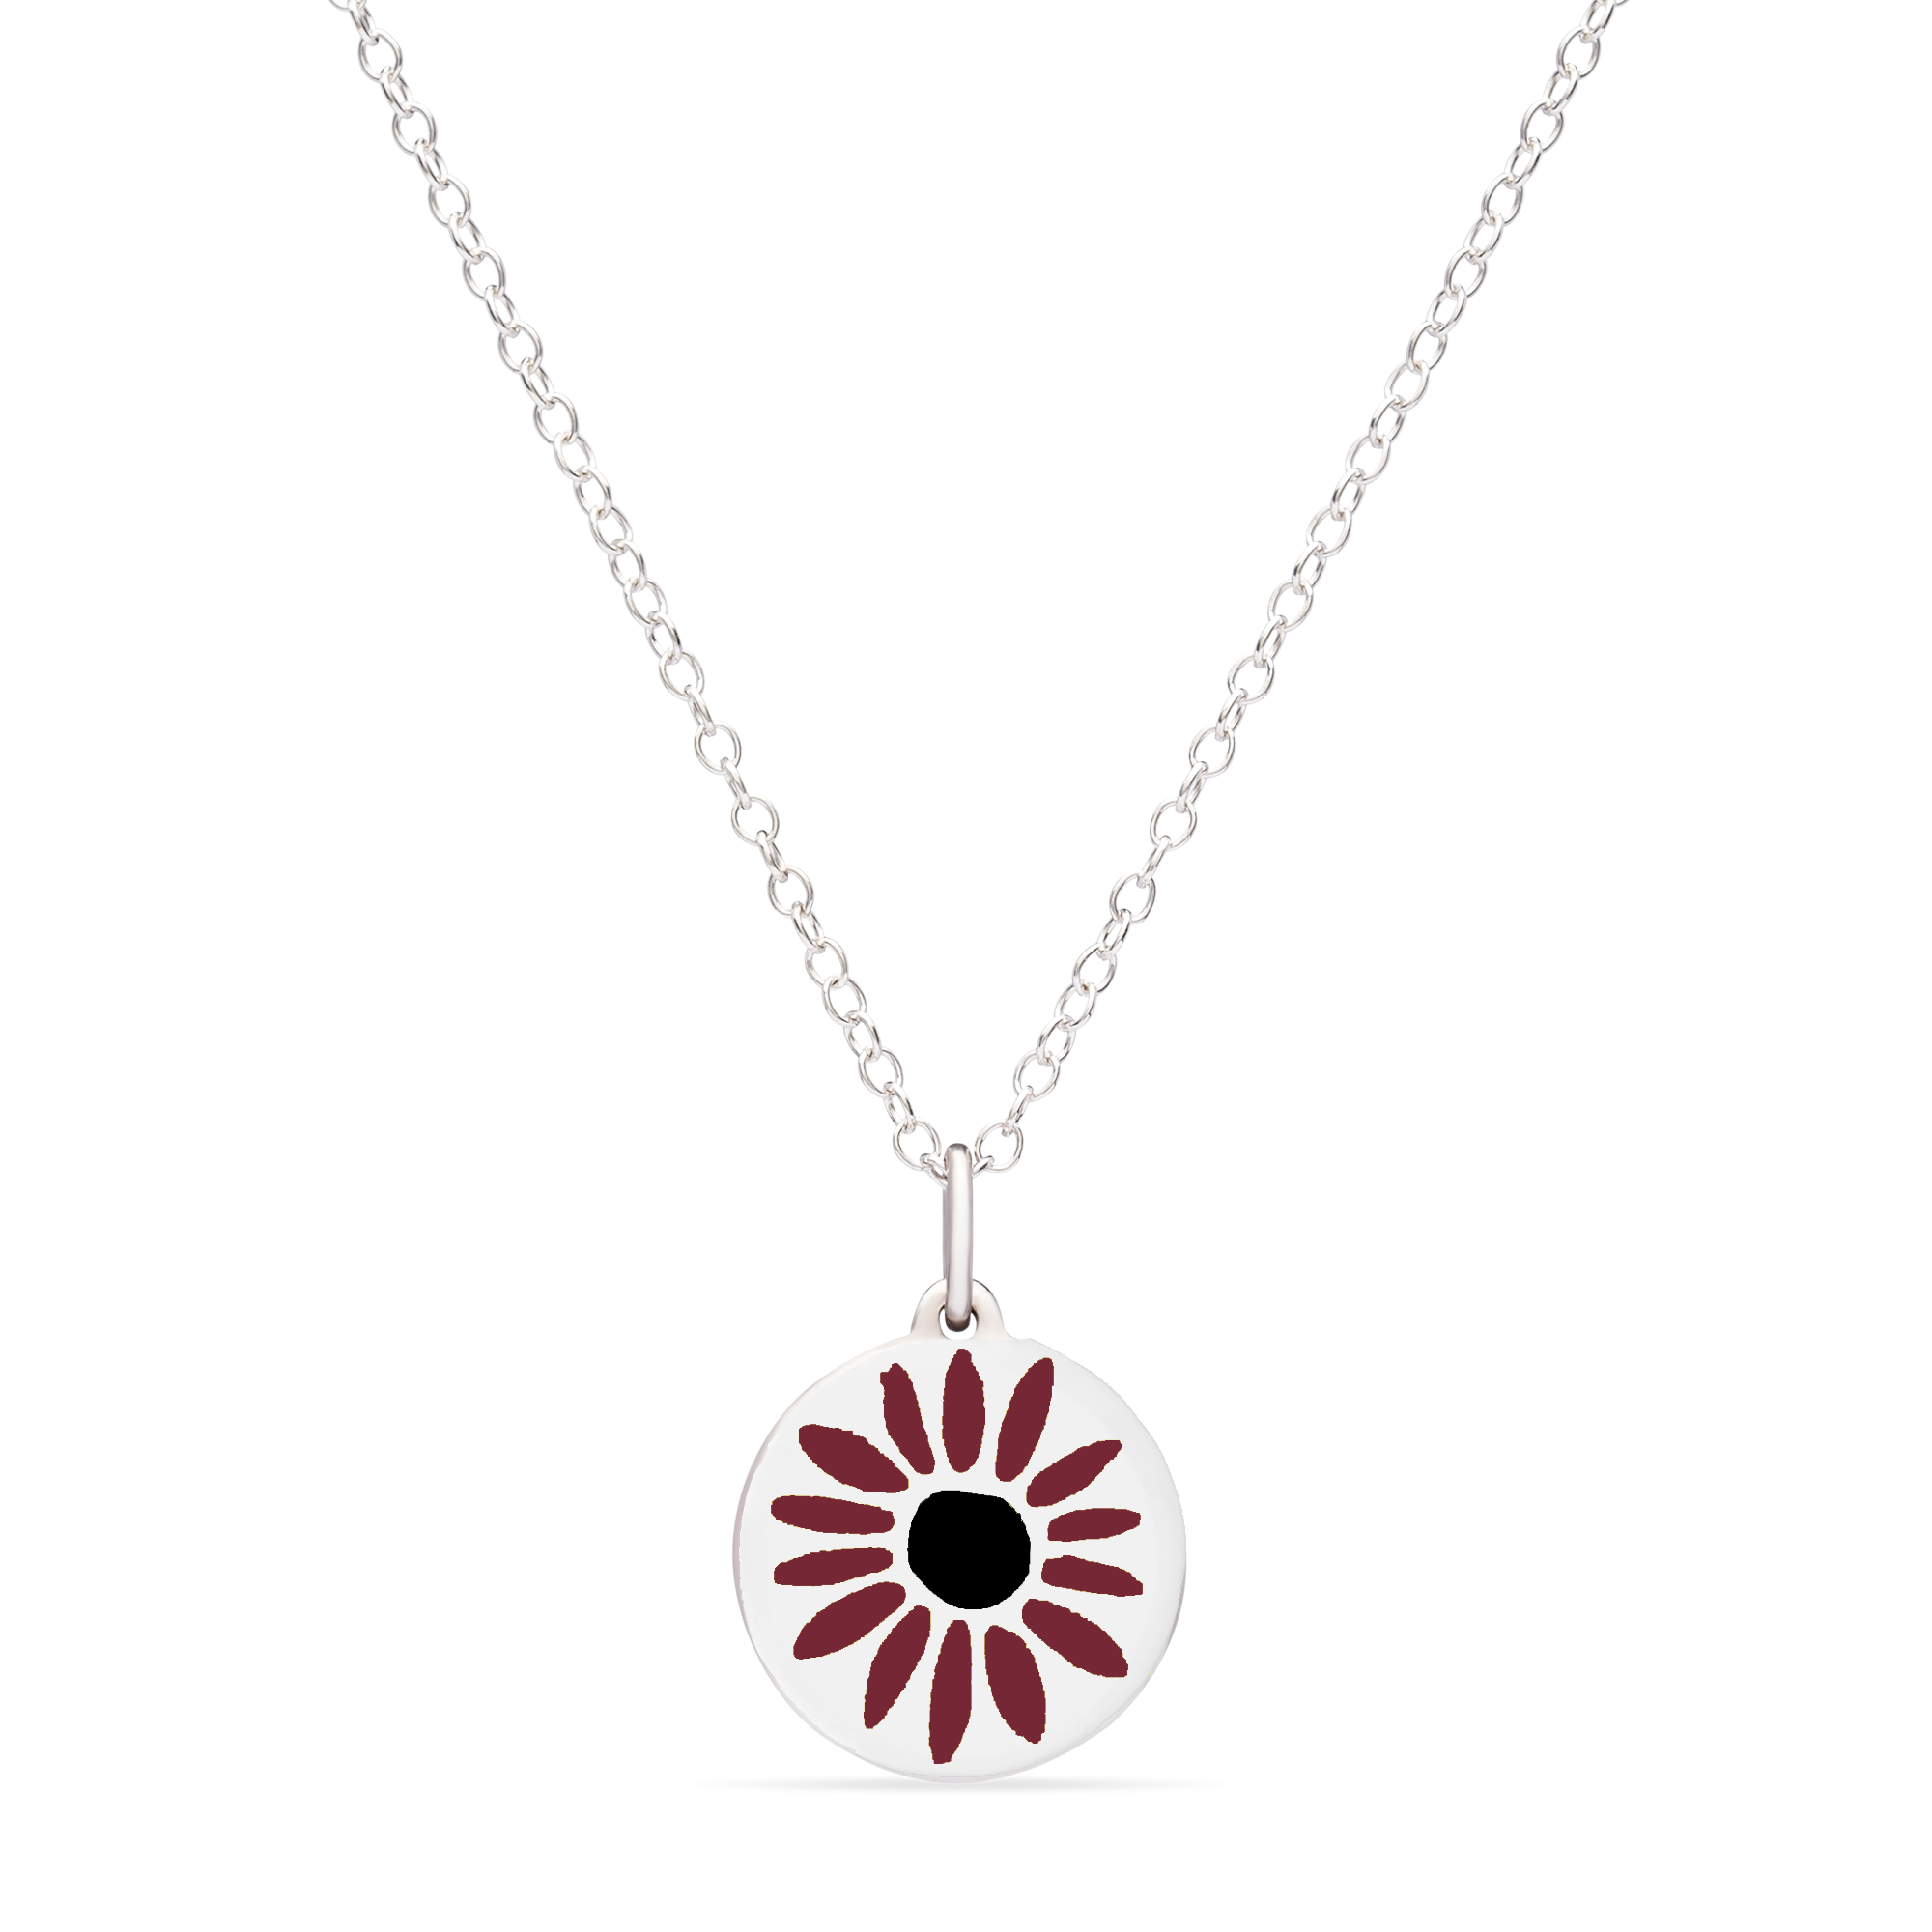 MINI DEEP RED DAISY CHARM sterling silver with rhodium plate